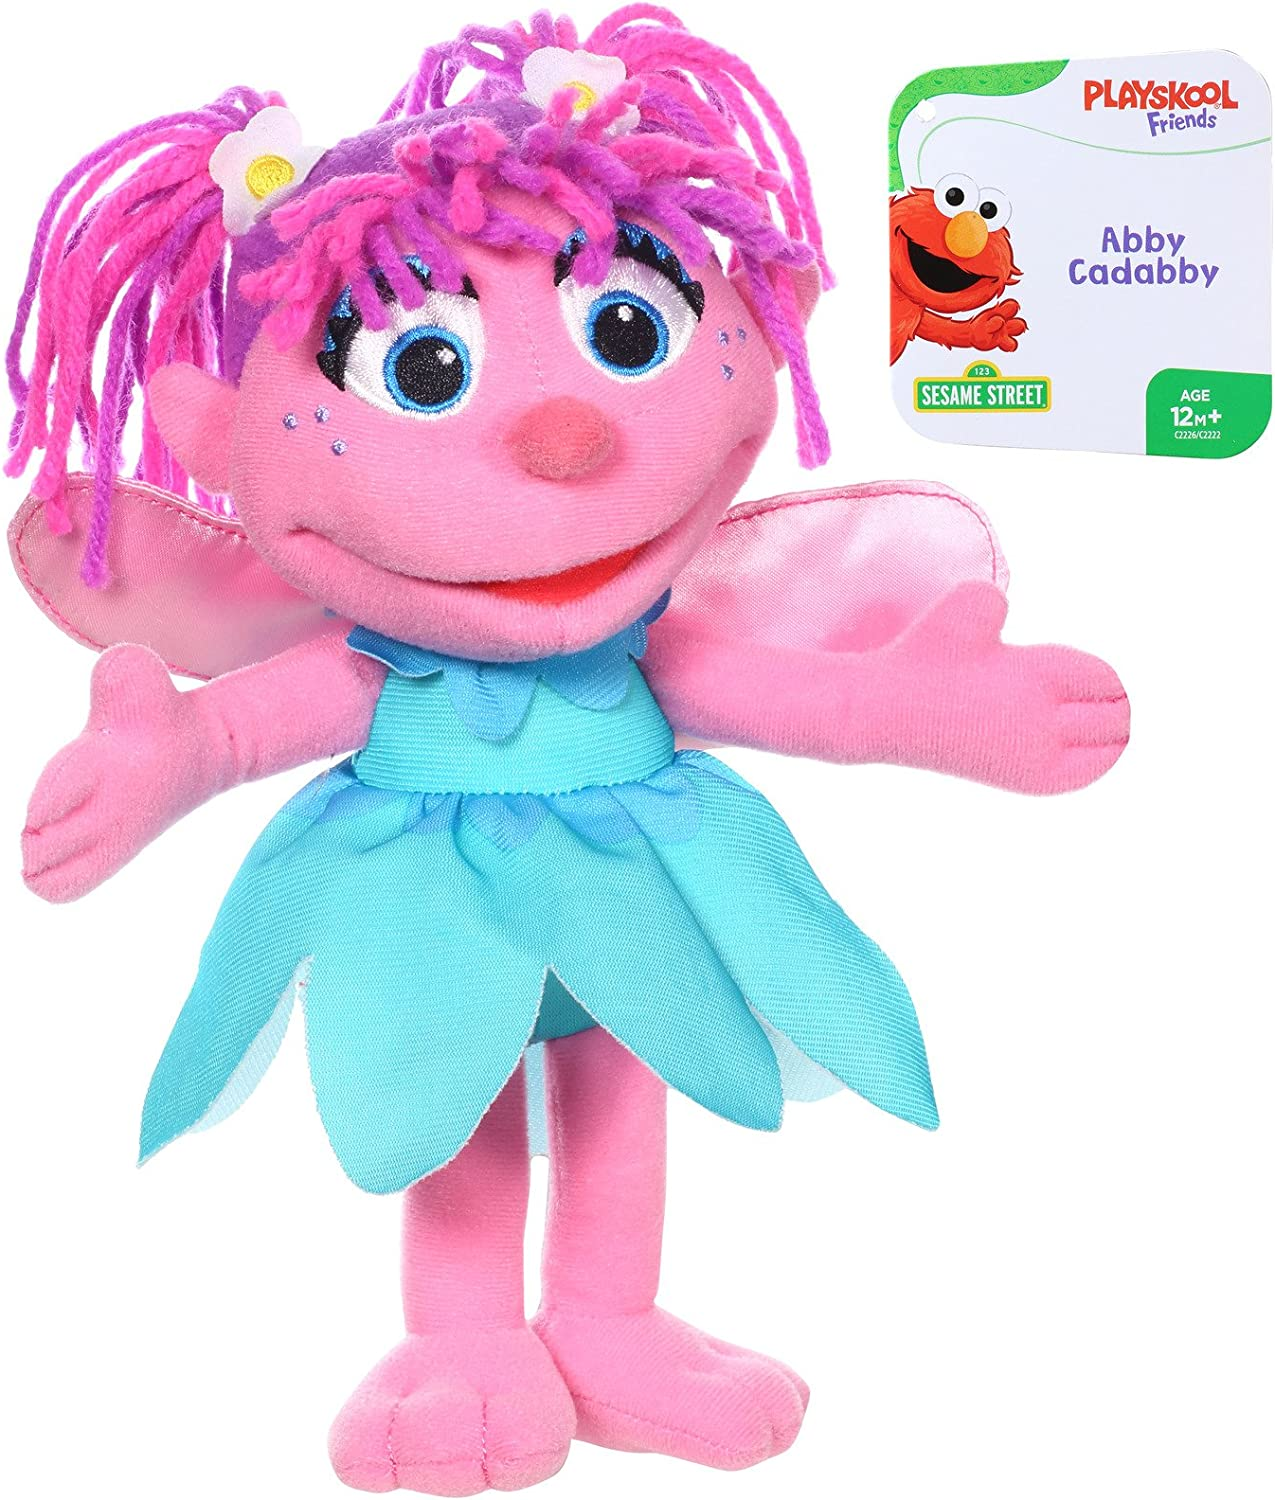 Sesame Street Mini Plush Abby Cadabby Doll 10 Inch Abby Cadabby Toy For Toddlers And Preschoolers Toy For 1 Year Olds And Up